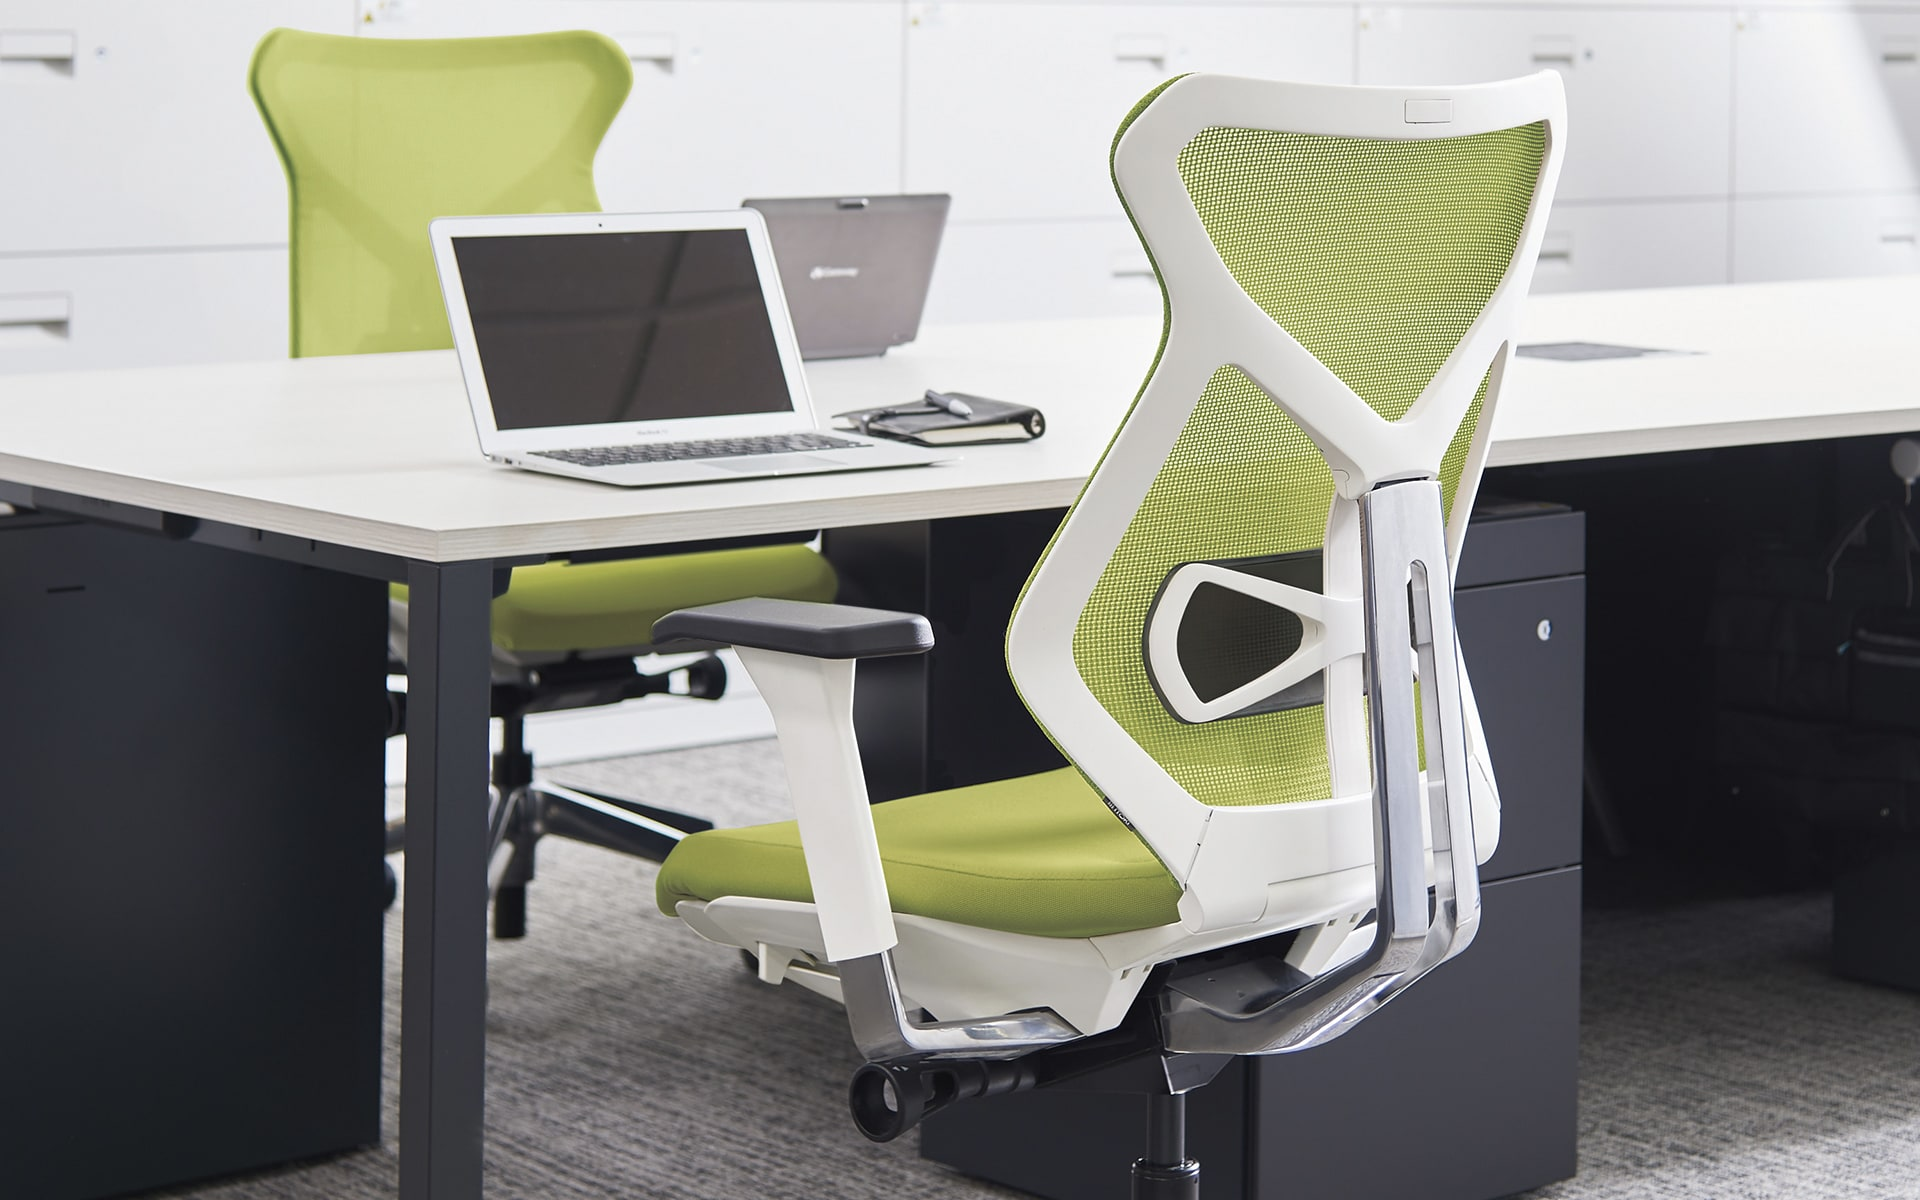 ITOKI Sequa Office Chair by ITO Design in white and apple-green at minimalist desk